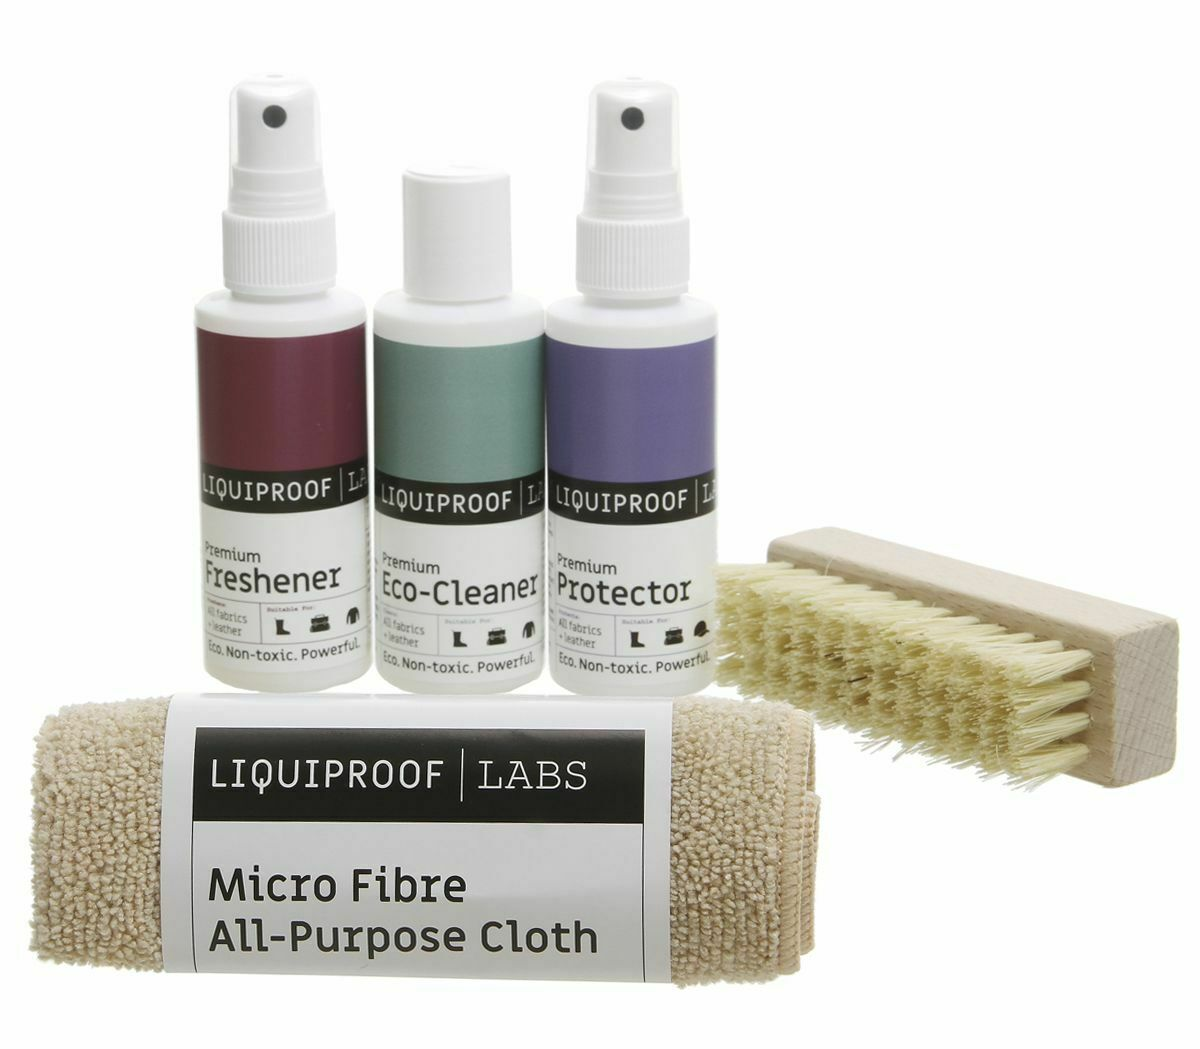 Accessories Liquiproof Labs Liquiproof Complete Starter Kit Natural Accessories